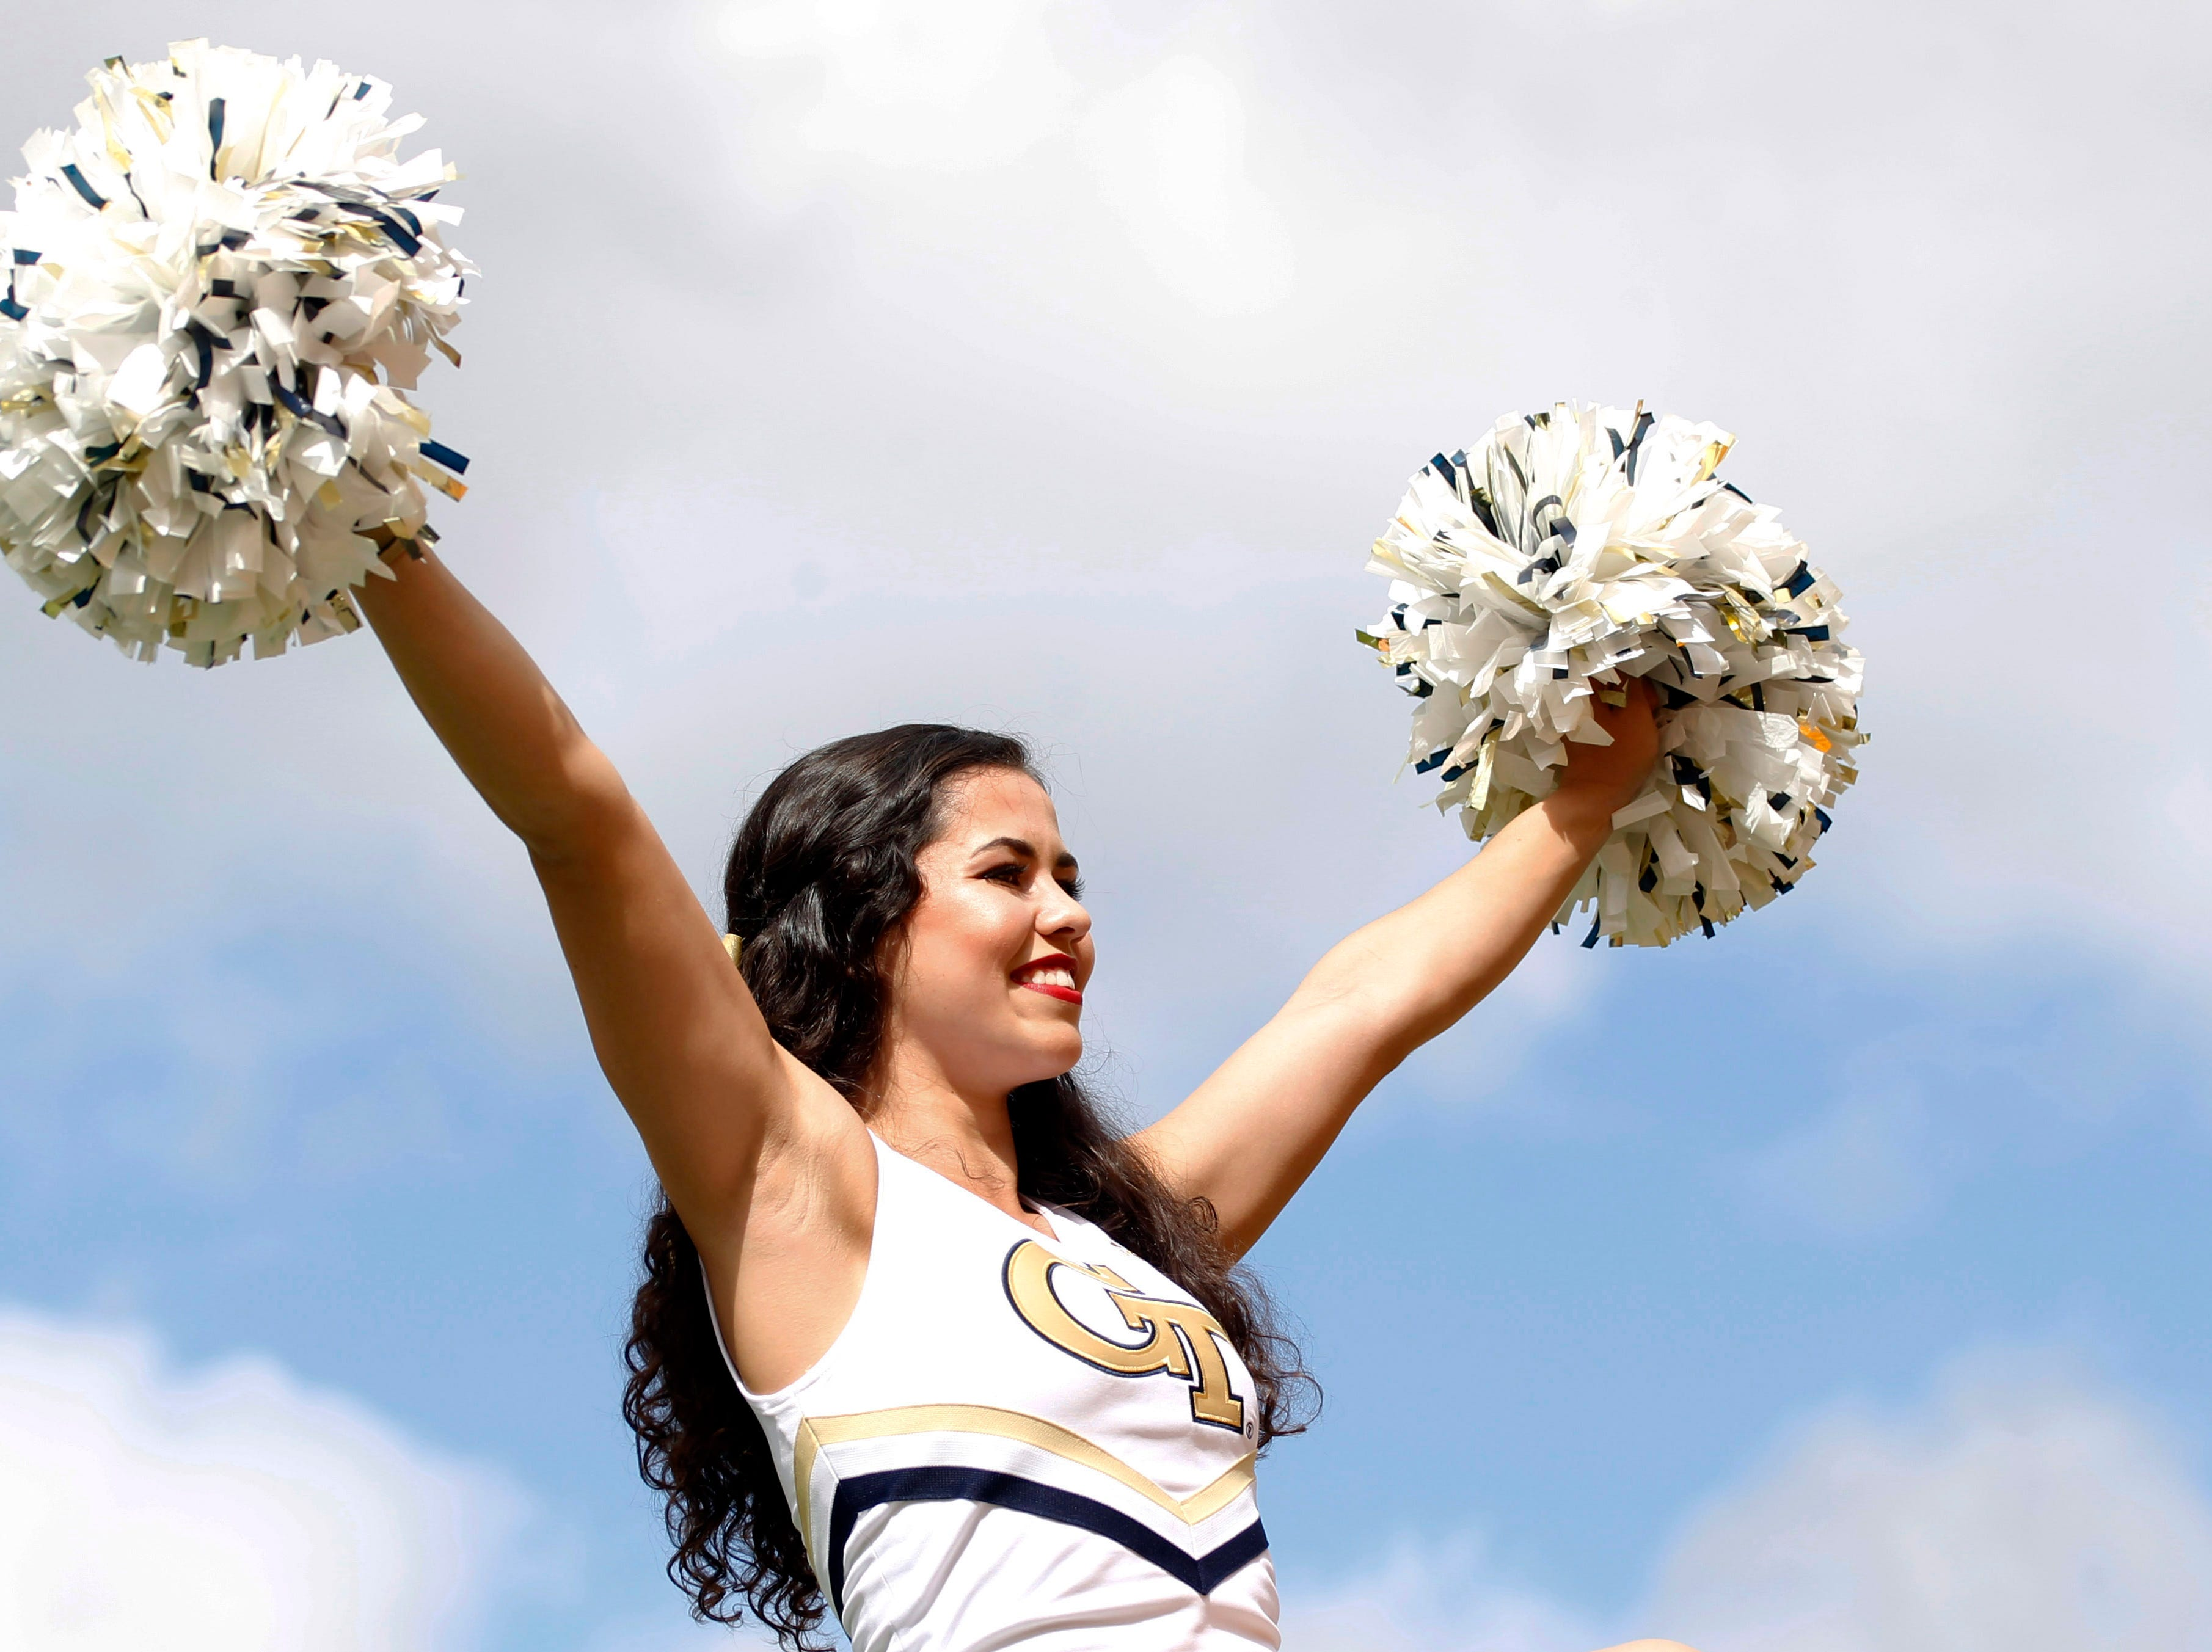 Week 3: A Georgia Tech cheerleader cheers before the Yellow Jackets play the Pittsburgh Panthers at Heinz Field.